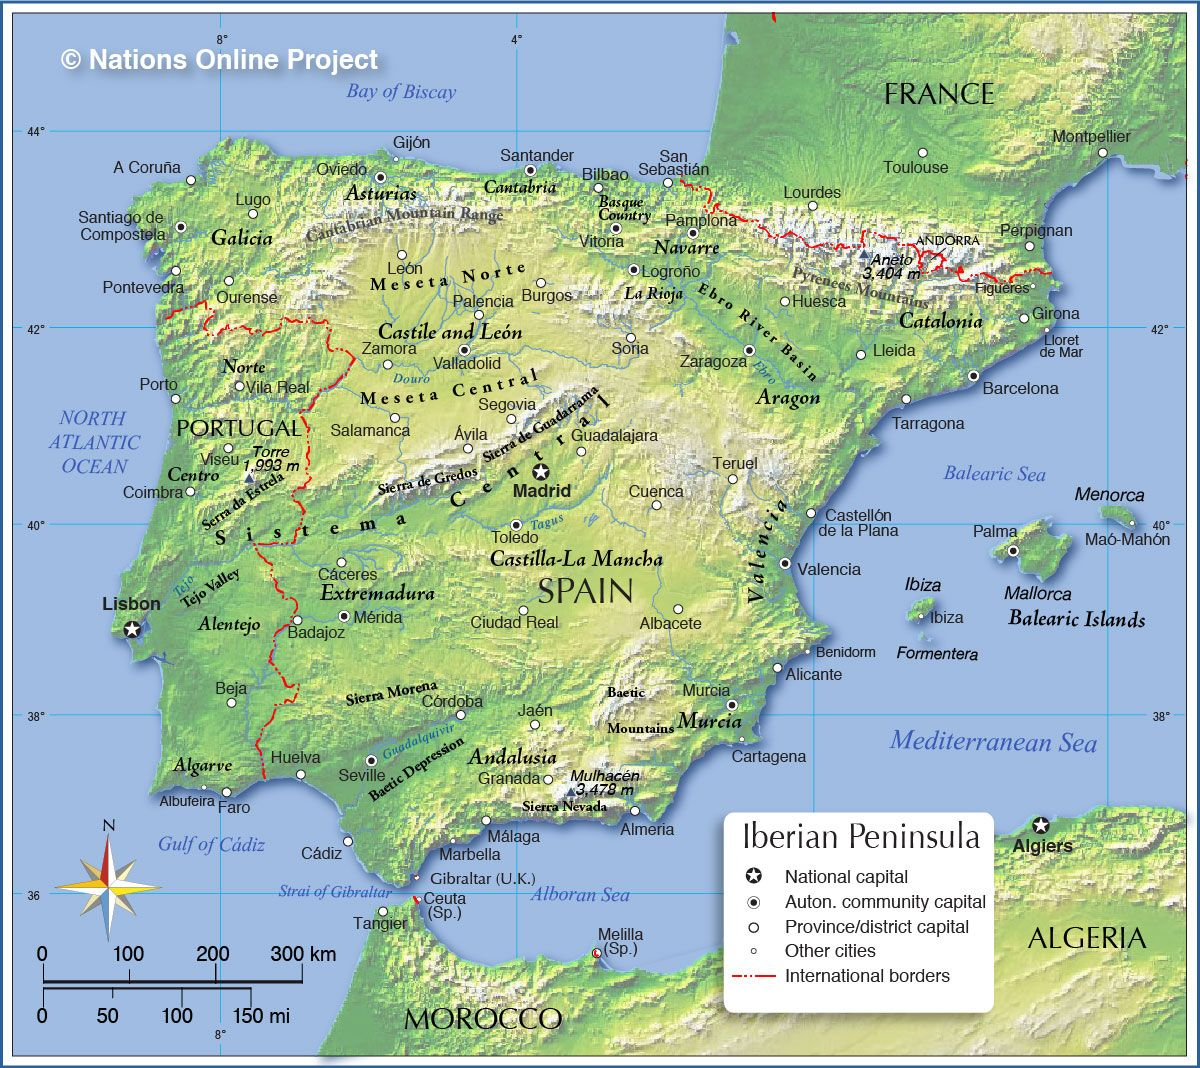 Topographic Map Of Colombia.Topographic Map Of Spain Nations Online Project Fantasy Maps